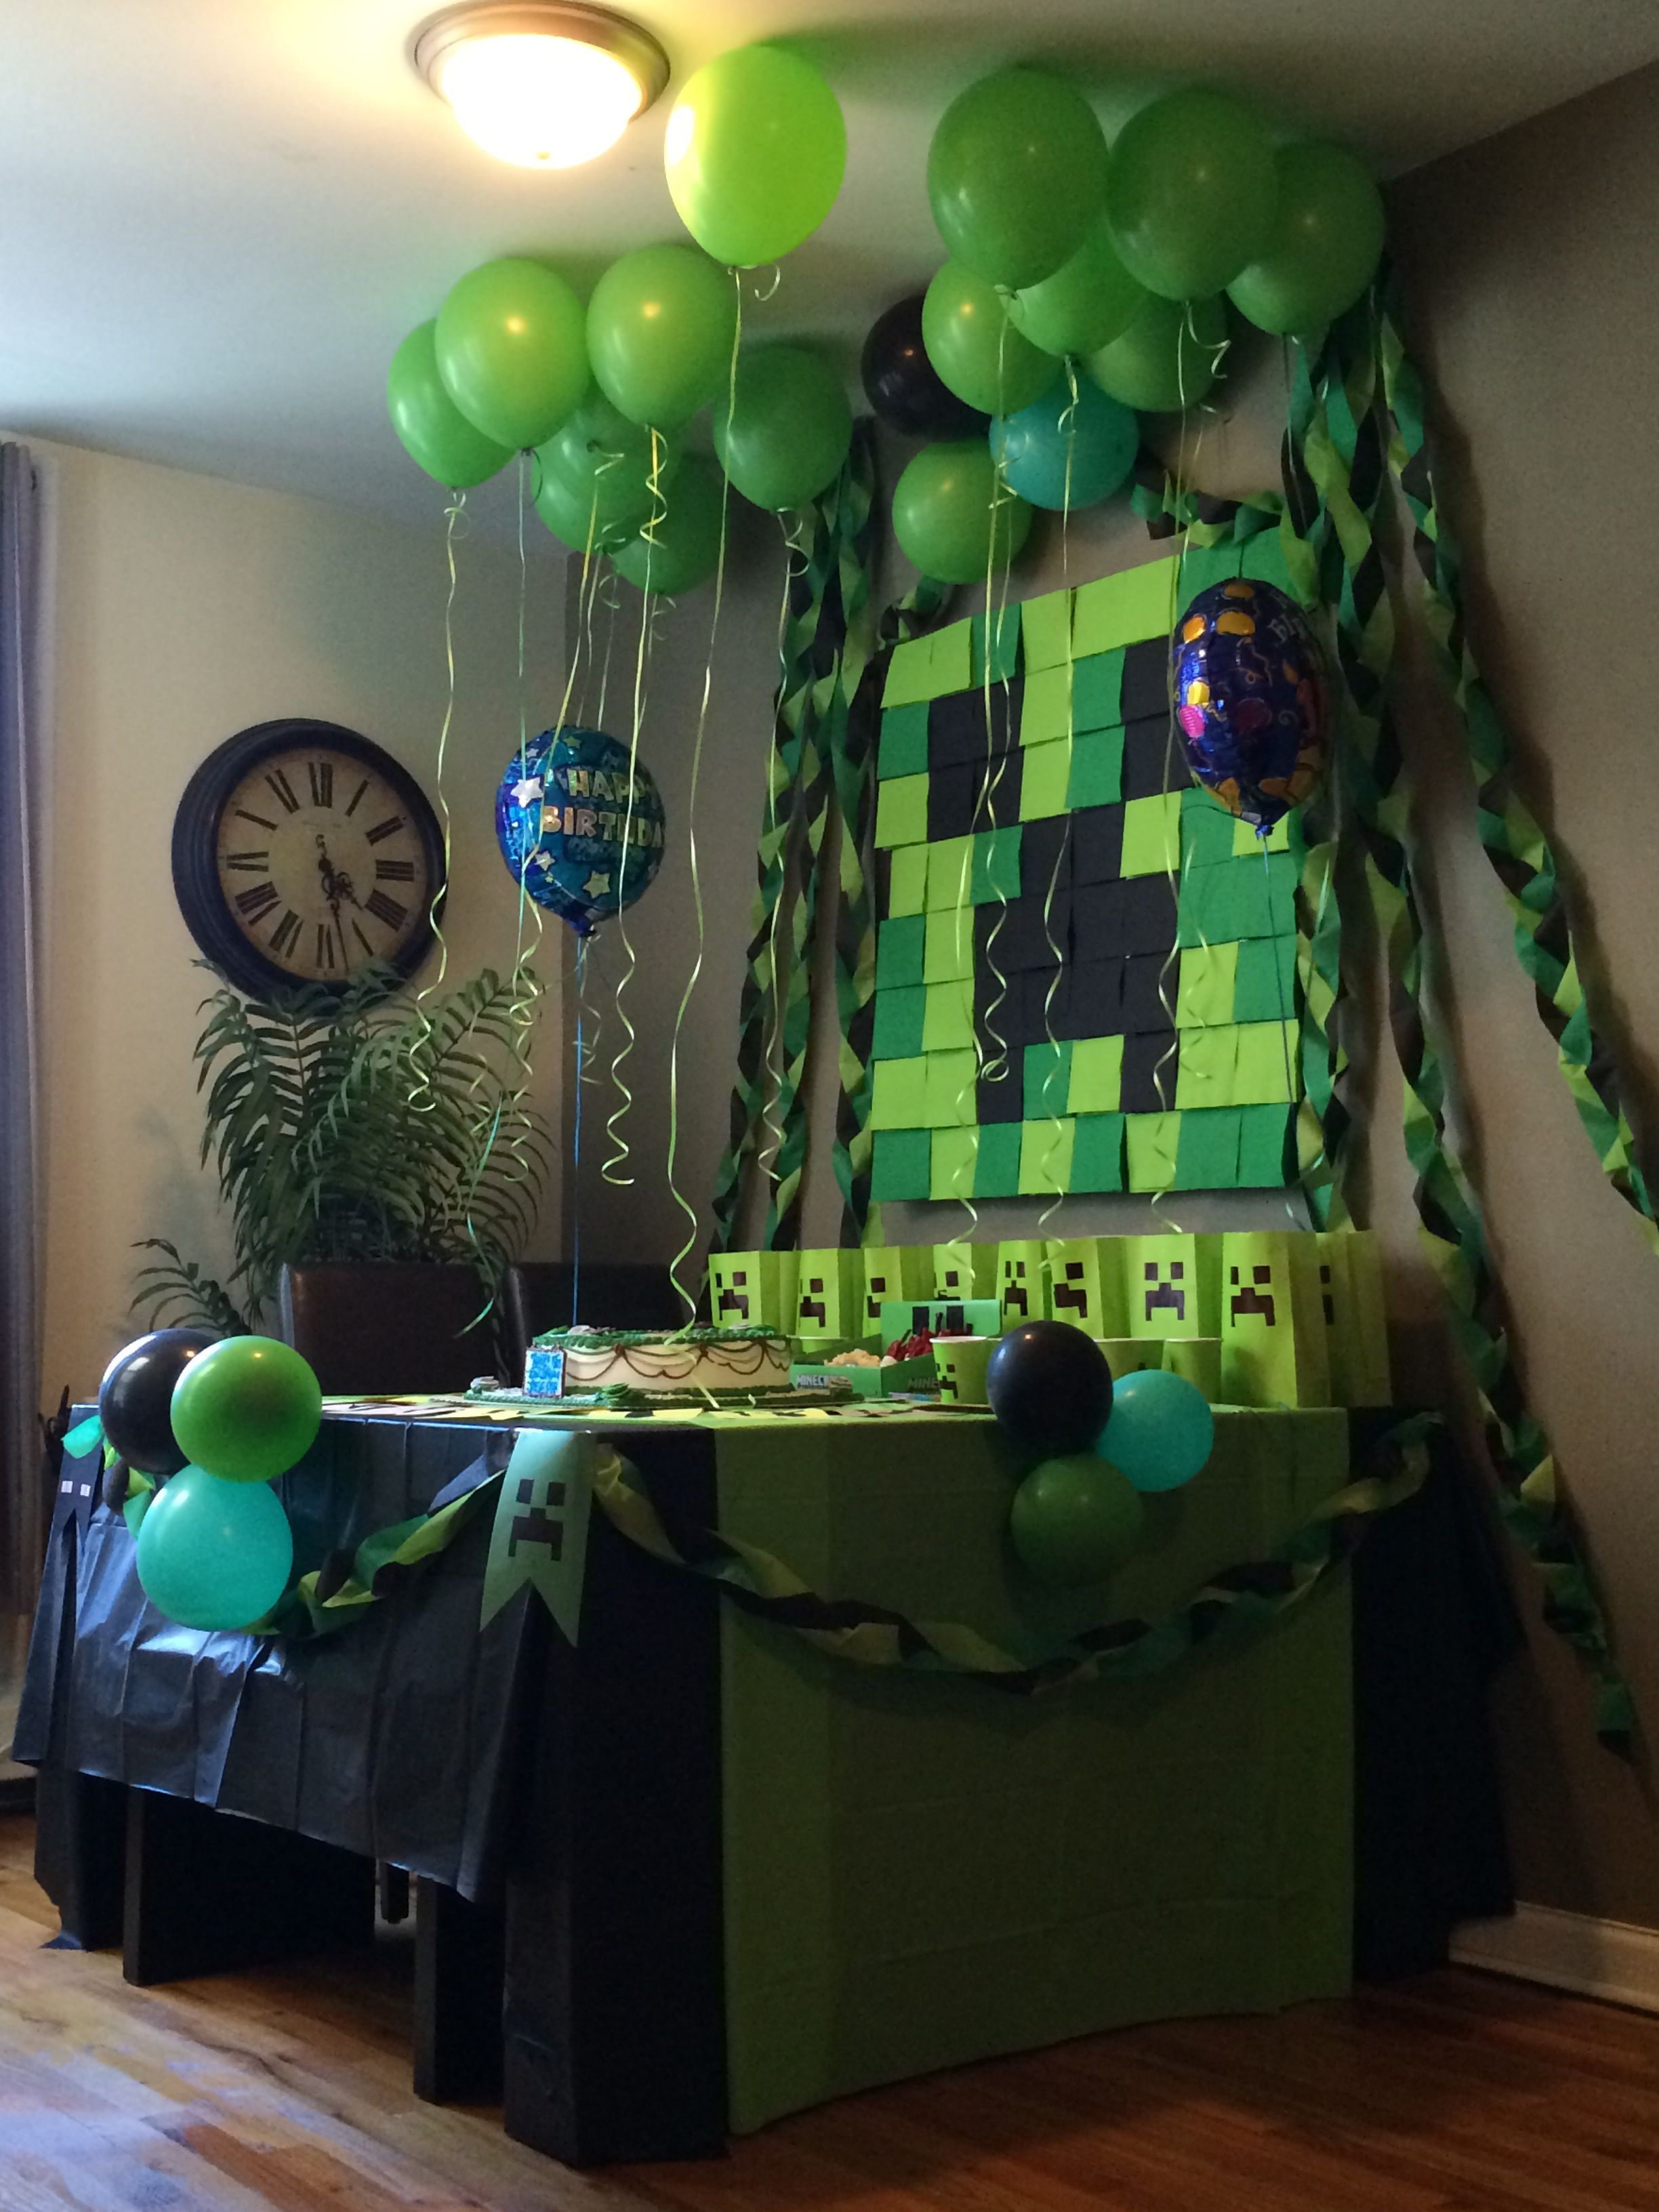 Minecraft party homemade party decorations | Minecraft ...